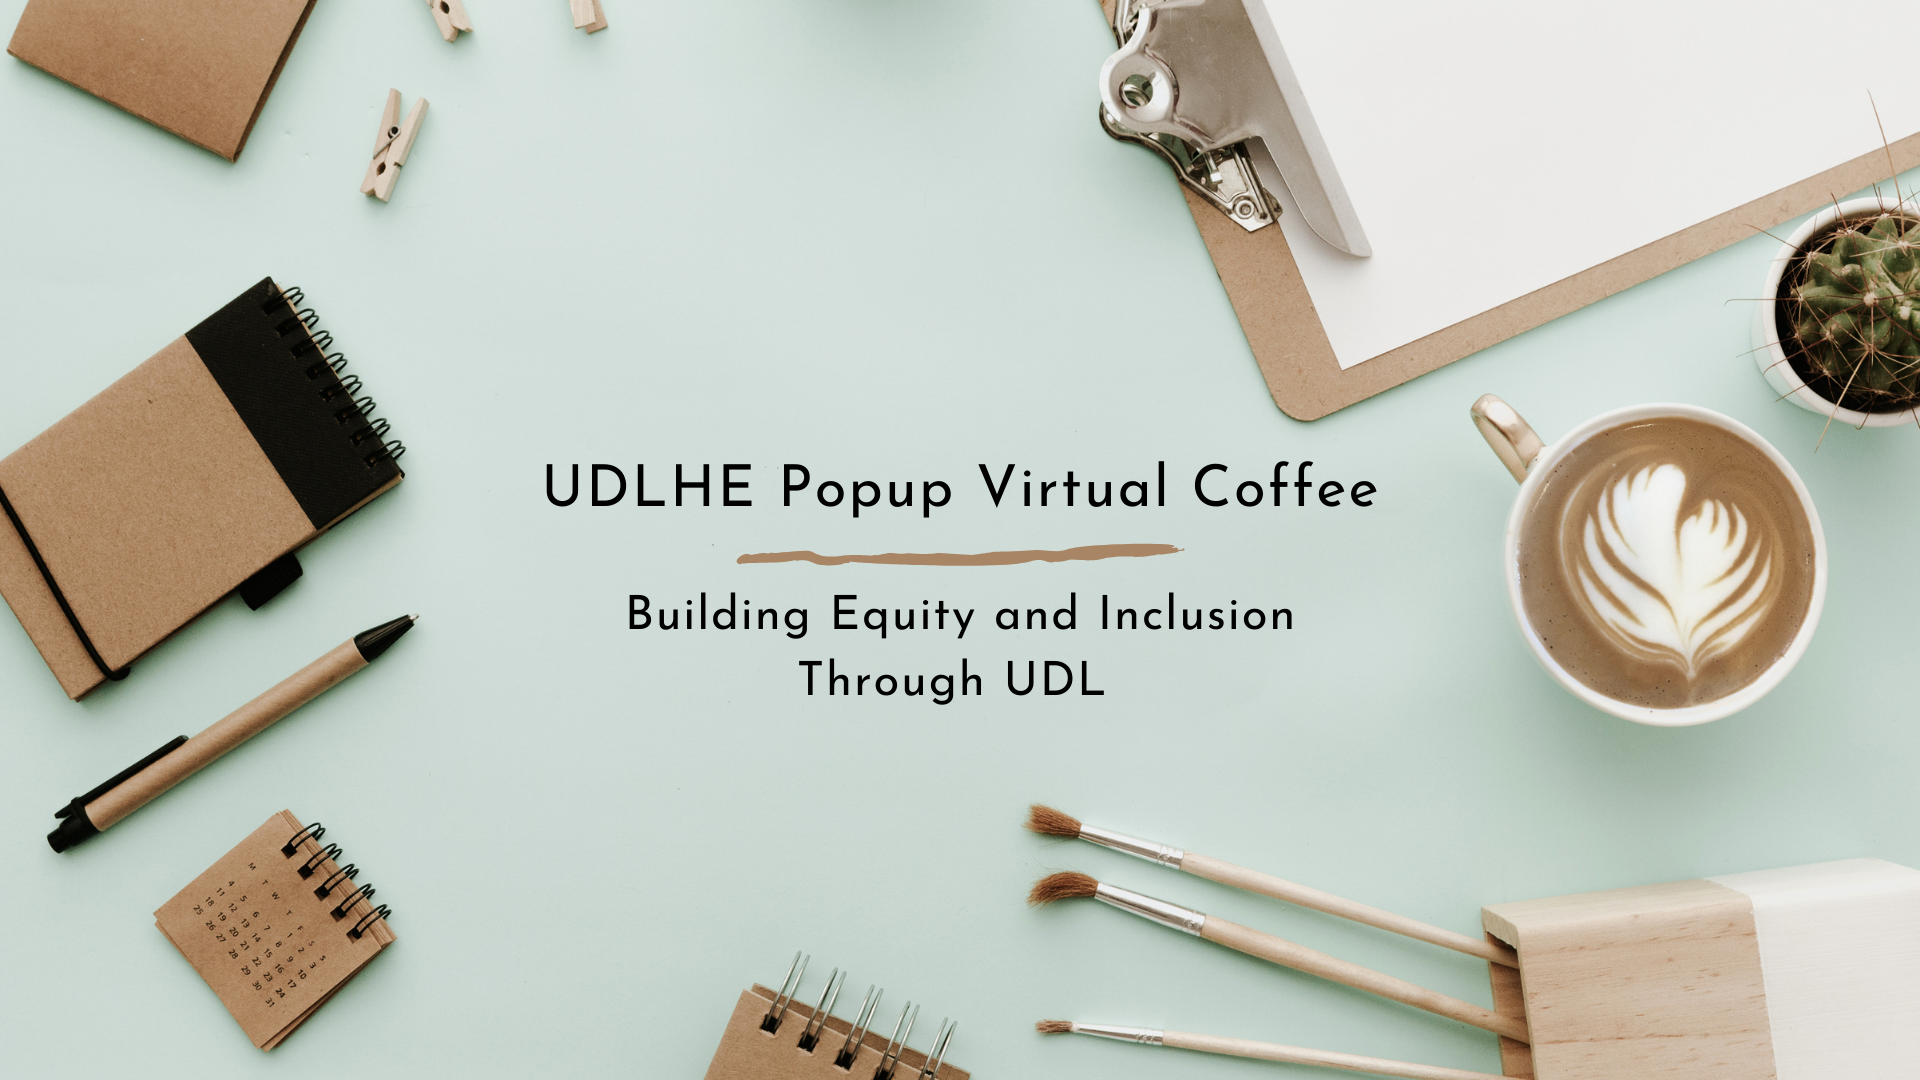 Image shows a desk with writing utensils and a coffee mug with the text: UDLHE Popup Virtual Coffee on Building Equity and Inclusion Through UDL